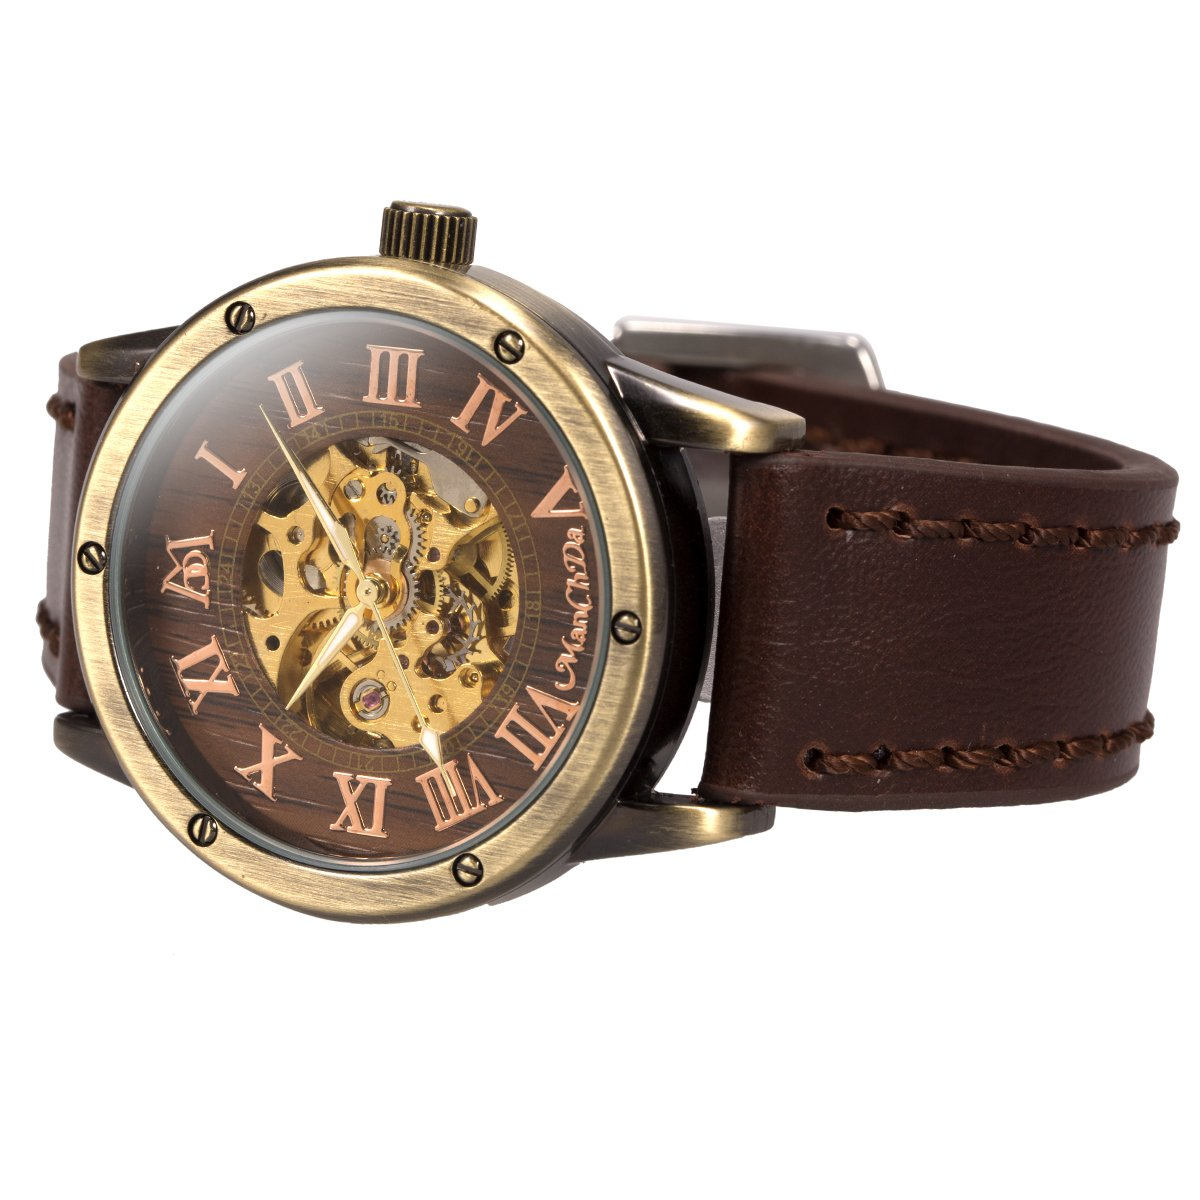 ManChDa Mens Wrist Watch Fashion Leather Band Special Burlywood dial  Automatic Mechanical Wrist Watch for Men + Gift Box » Steampunk Web